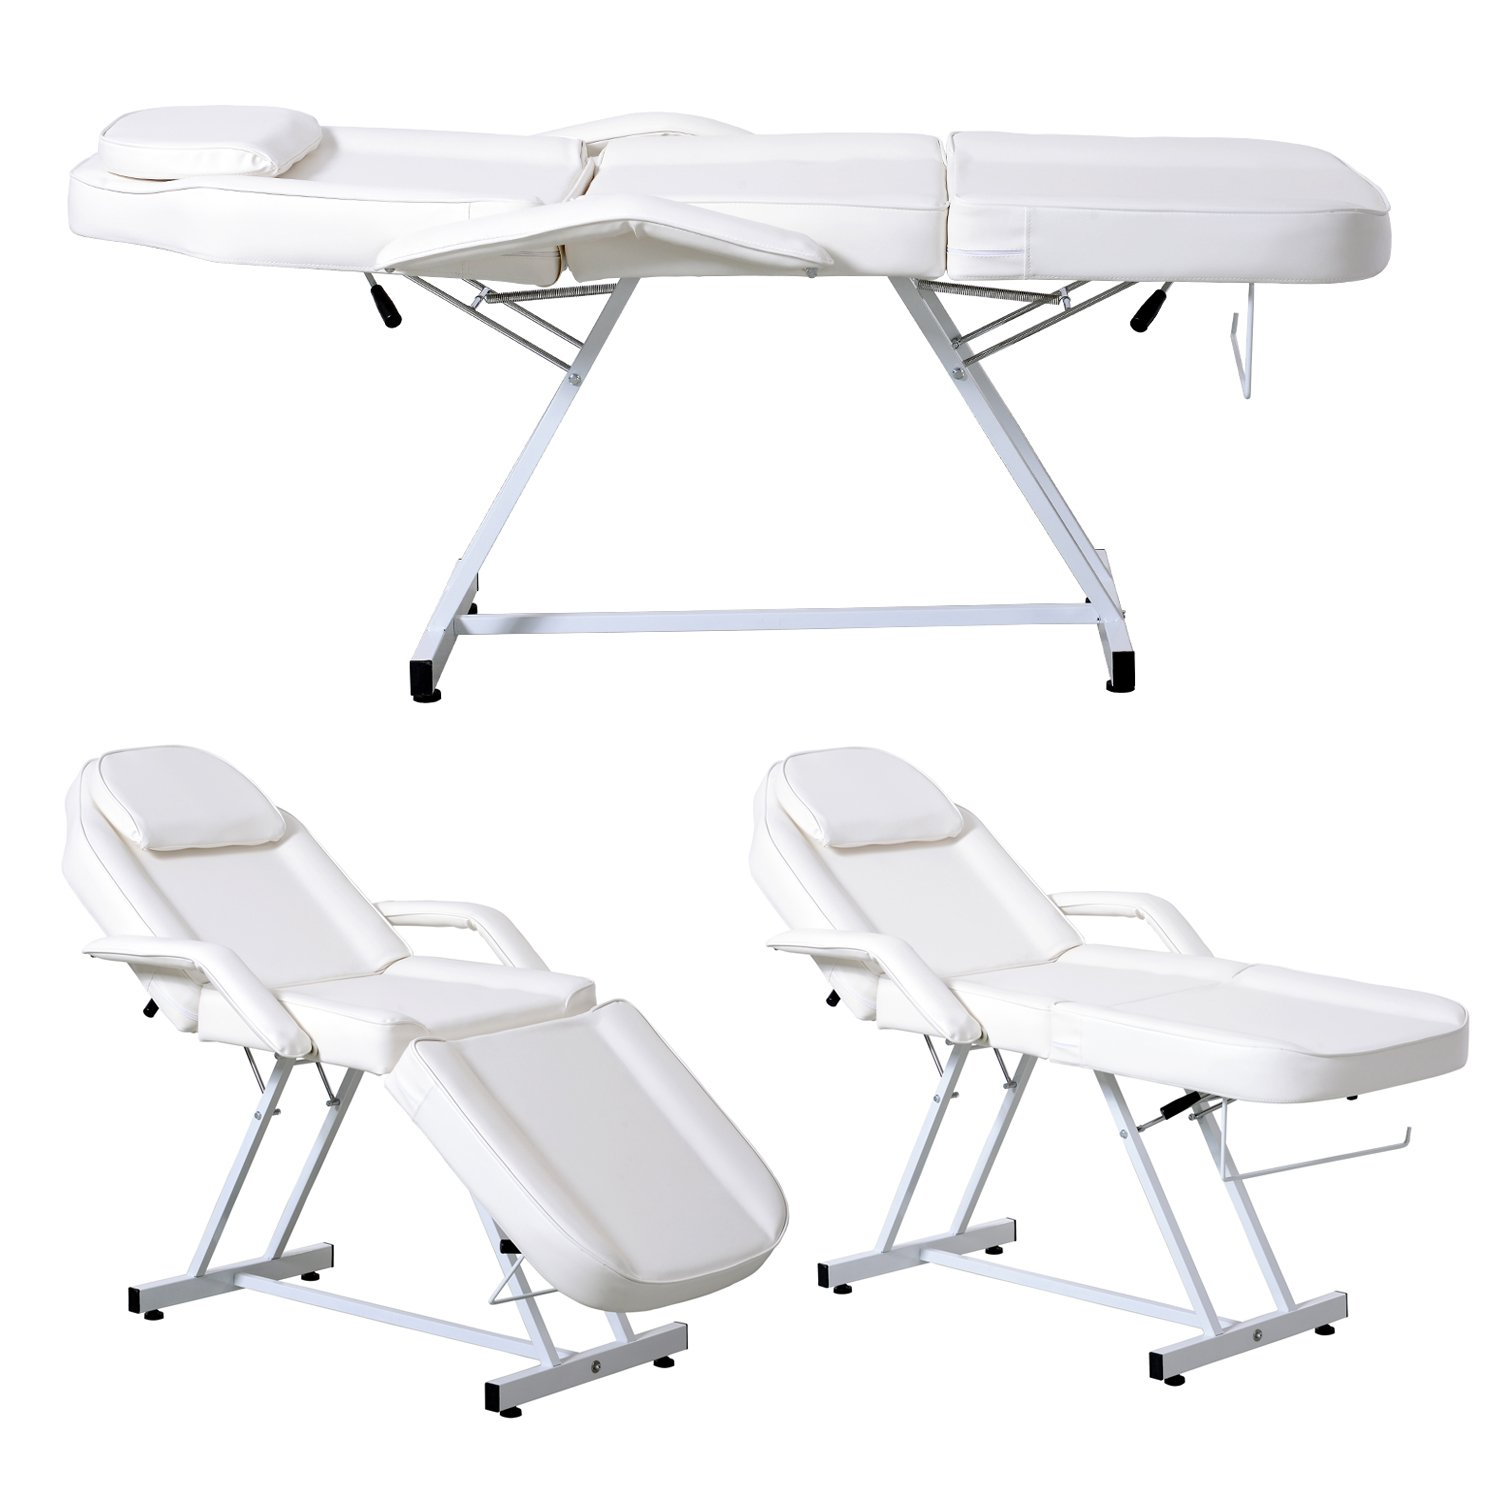 Enhance The Look With Spa Equipment